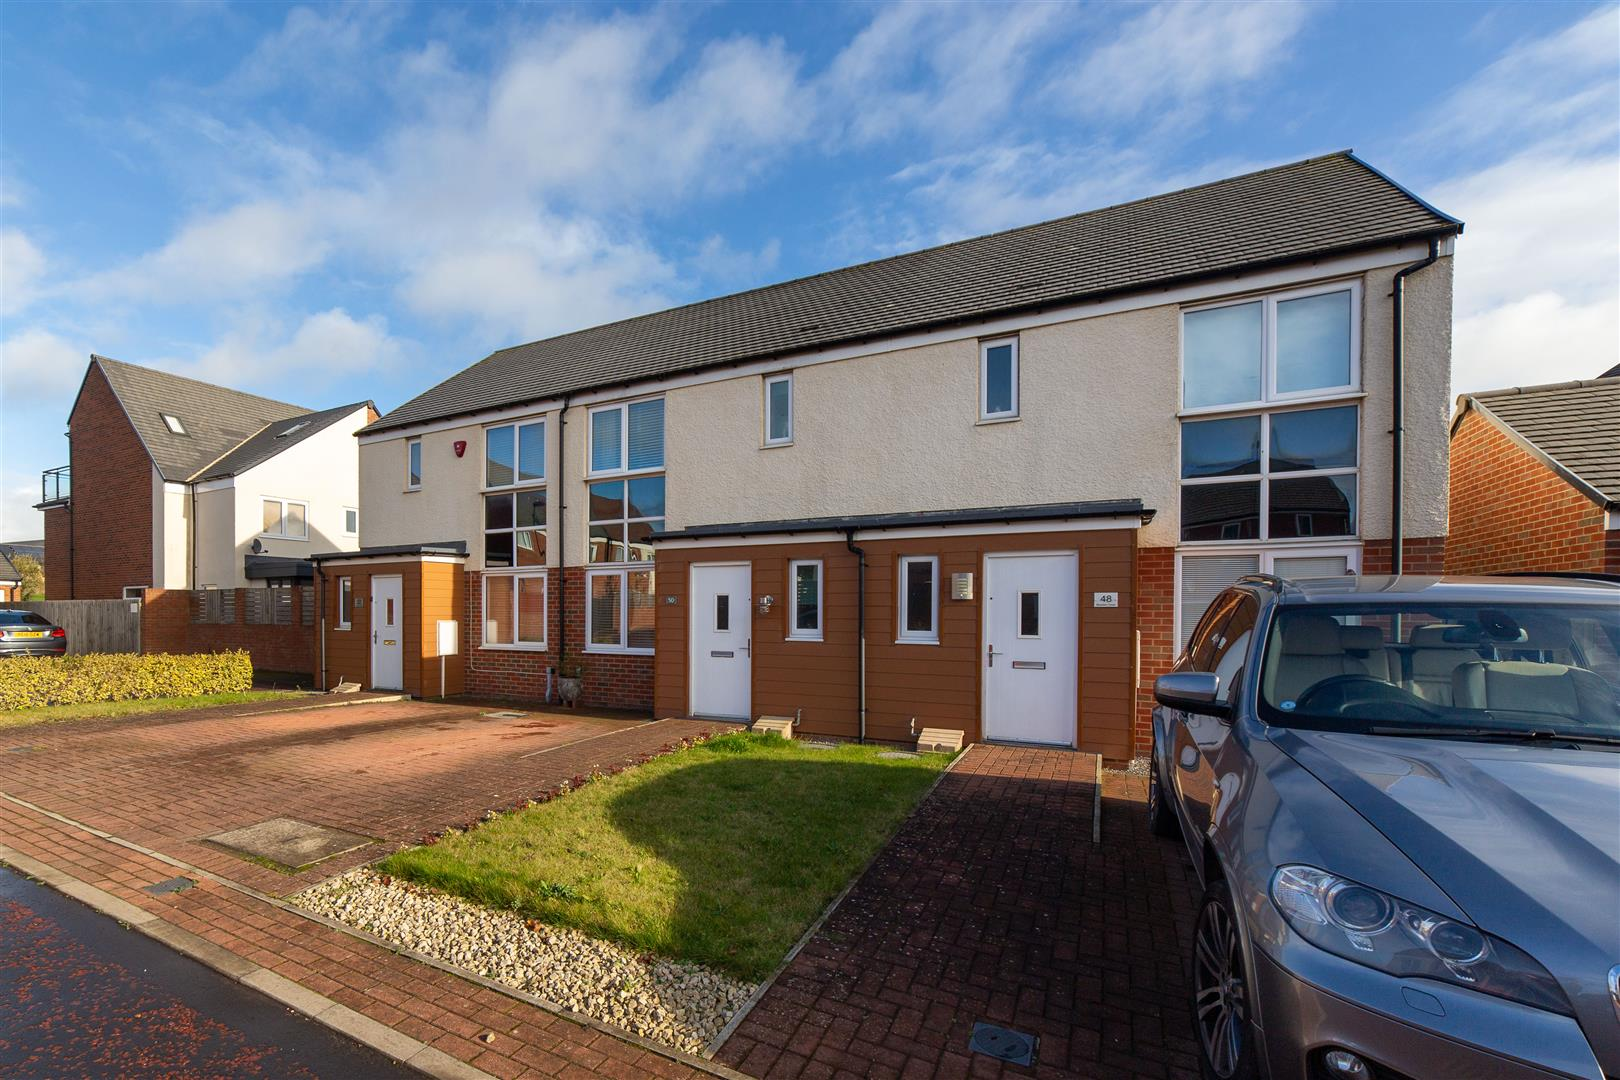 3 bed terraced house for sale in Newcastle Upon Tyne, NE13 9GB - Property Image 1